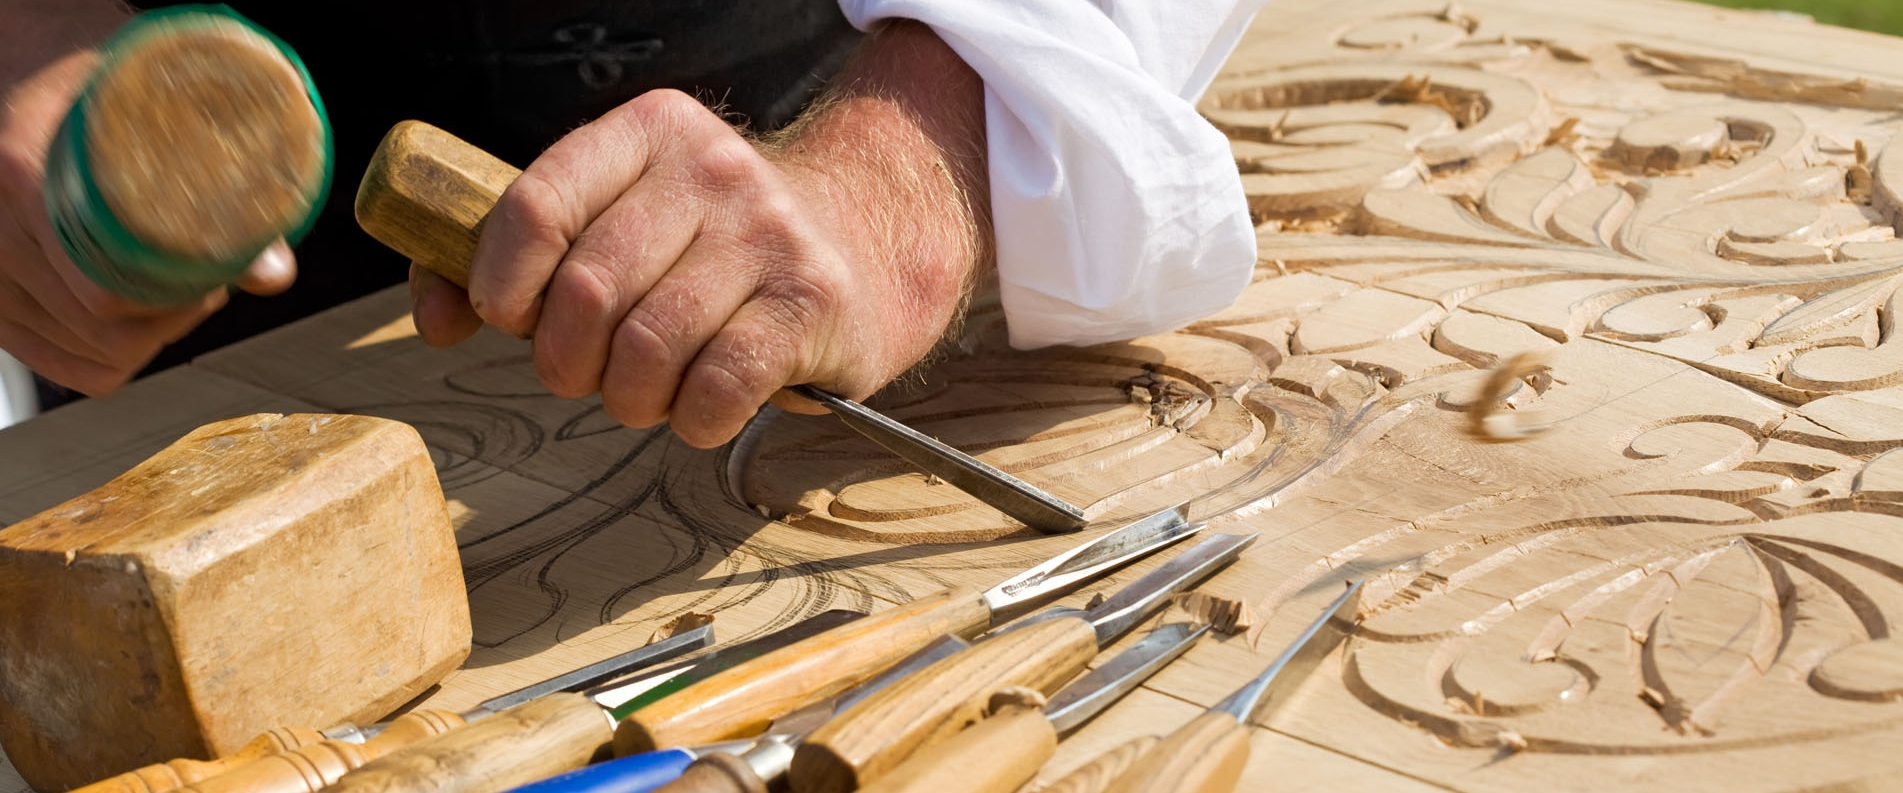 Wood Carving and Traditional Furniture Crafting